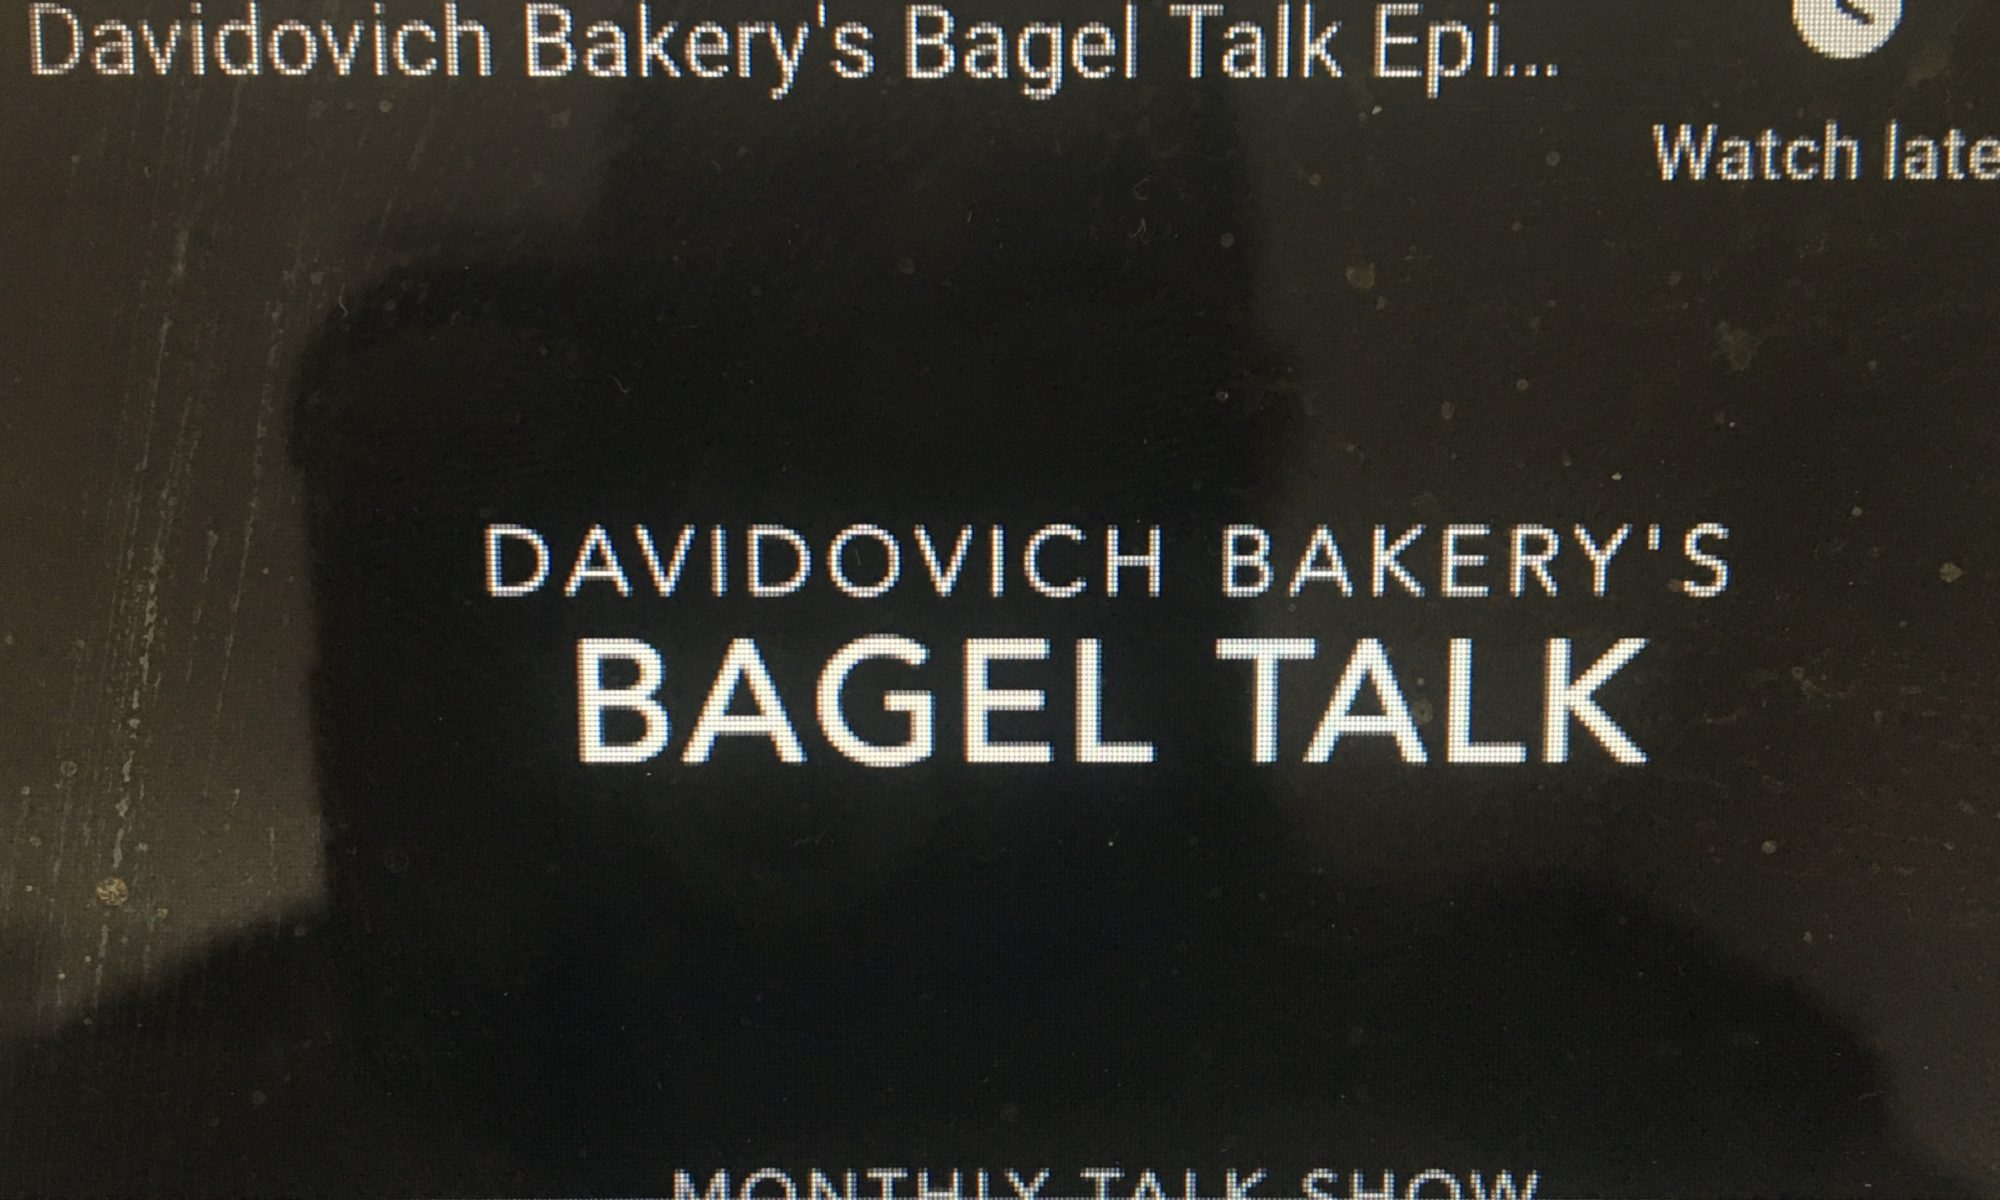 Bagel Talk Episode 9